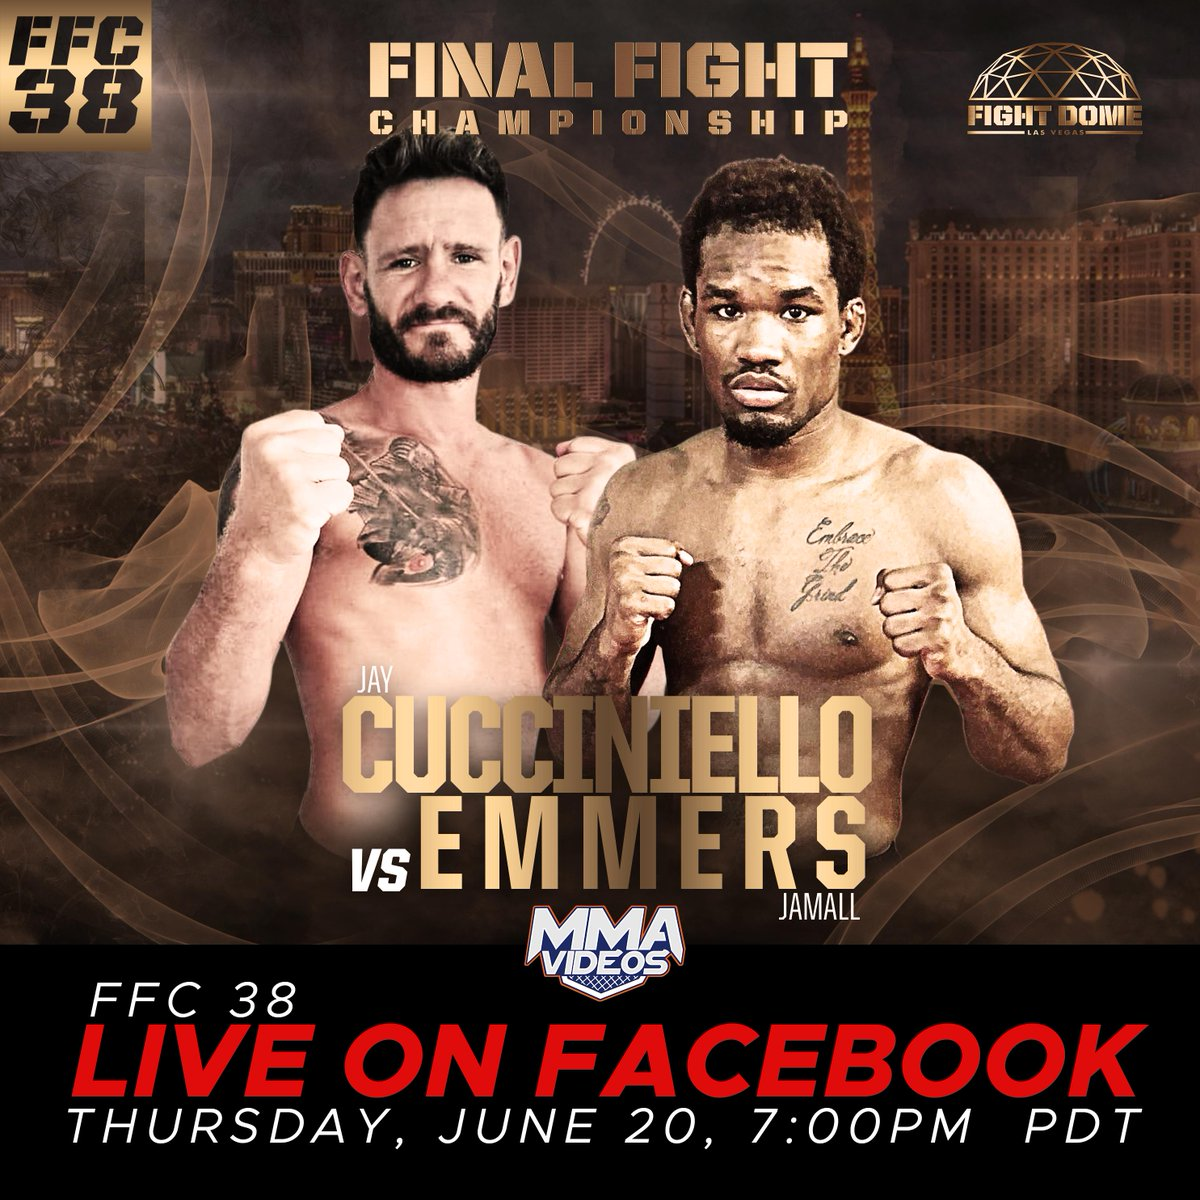 FFC 38 To Stream Live On Facebook, YouTube Thursday Night - https://www.themix.net/2018/06/ffc-38-to-stream-live-on-facebook-youtube-thursday-night/… #Ffc38 #FinalFightCage